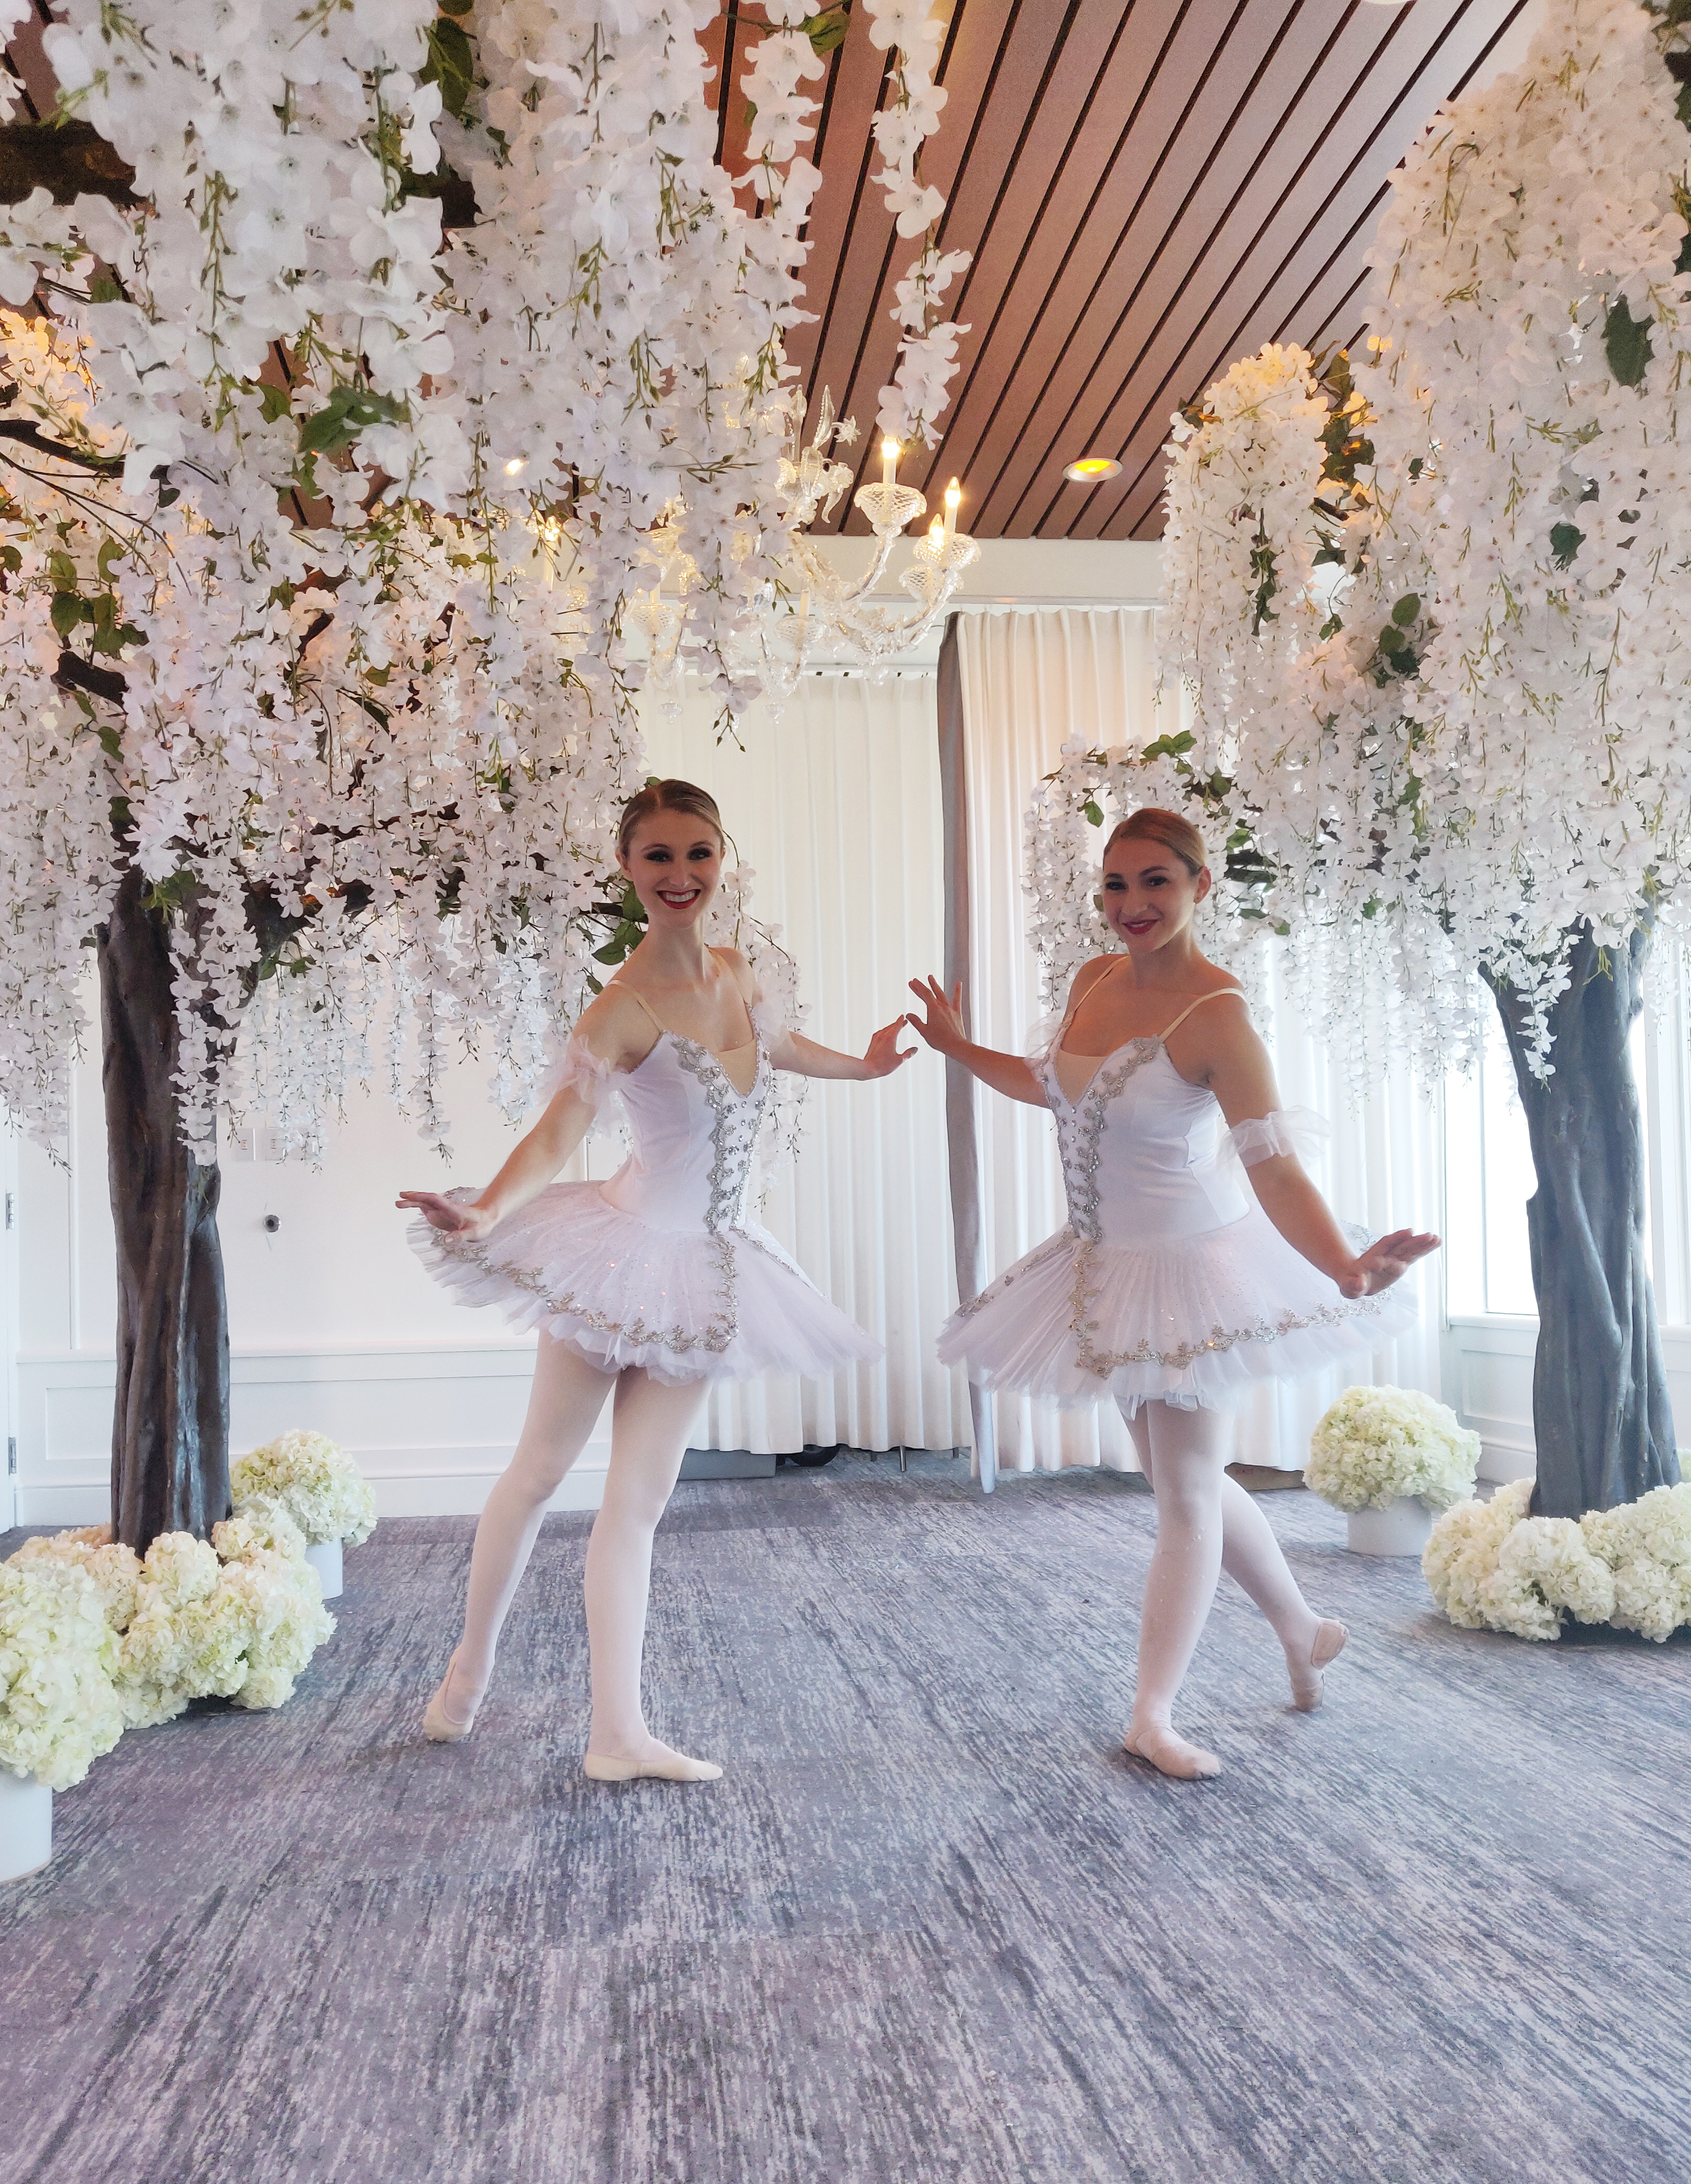 Ballet dancers in s winter wonderland